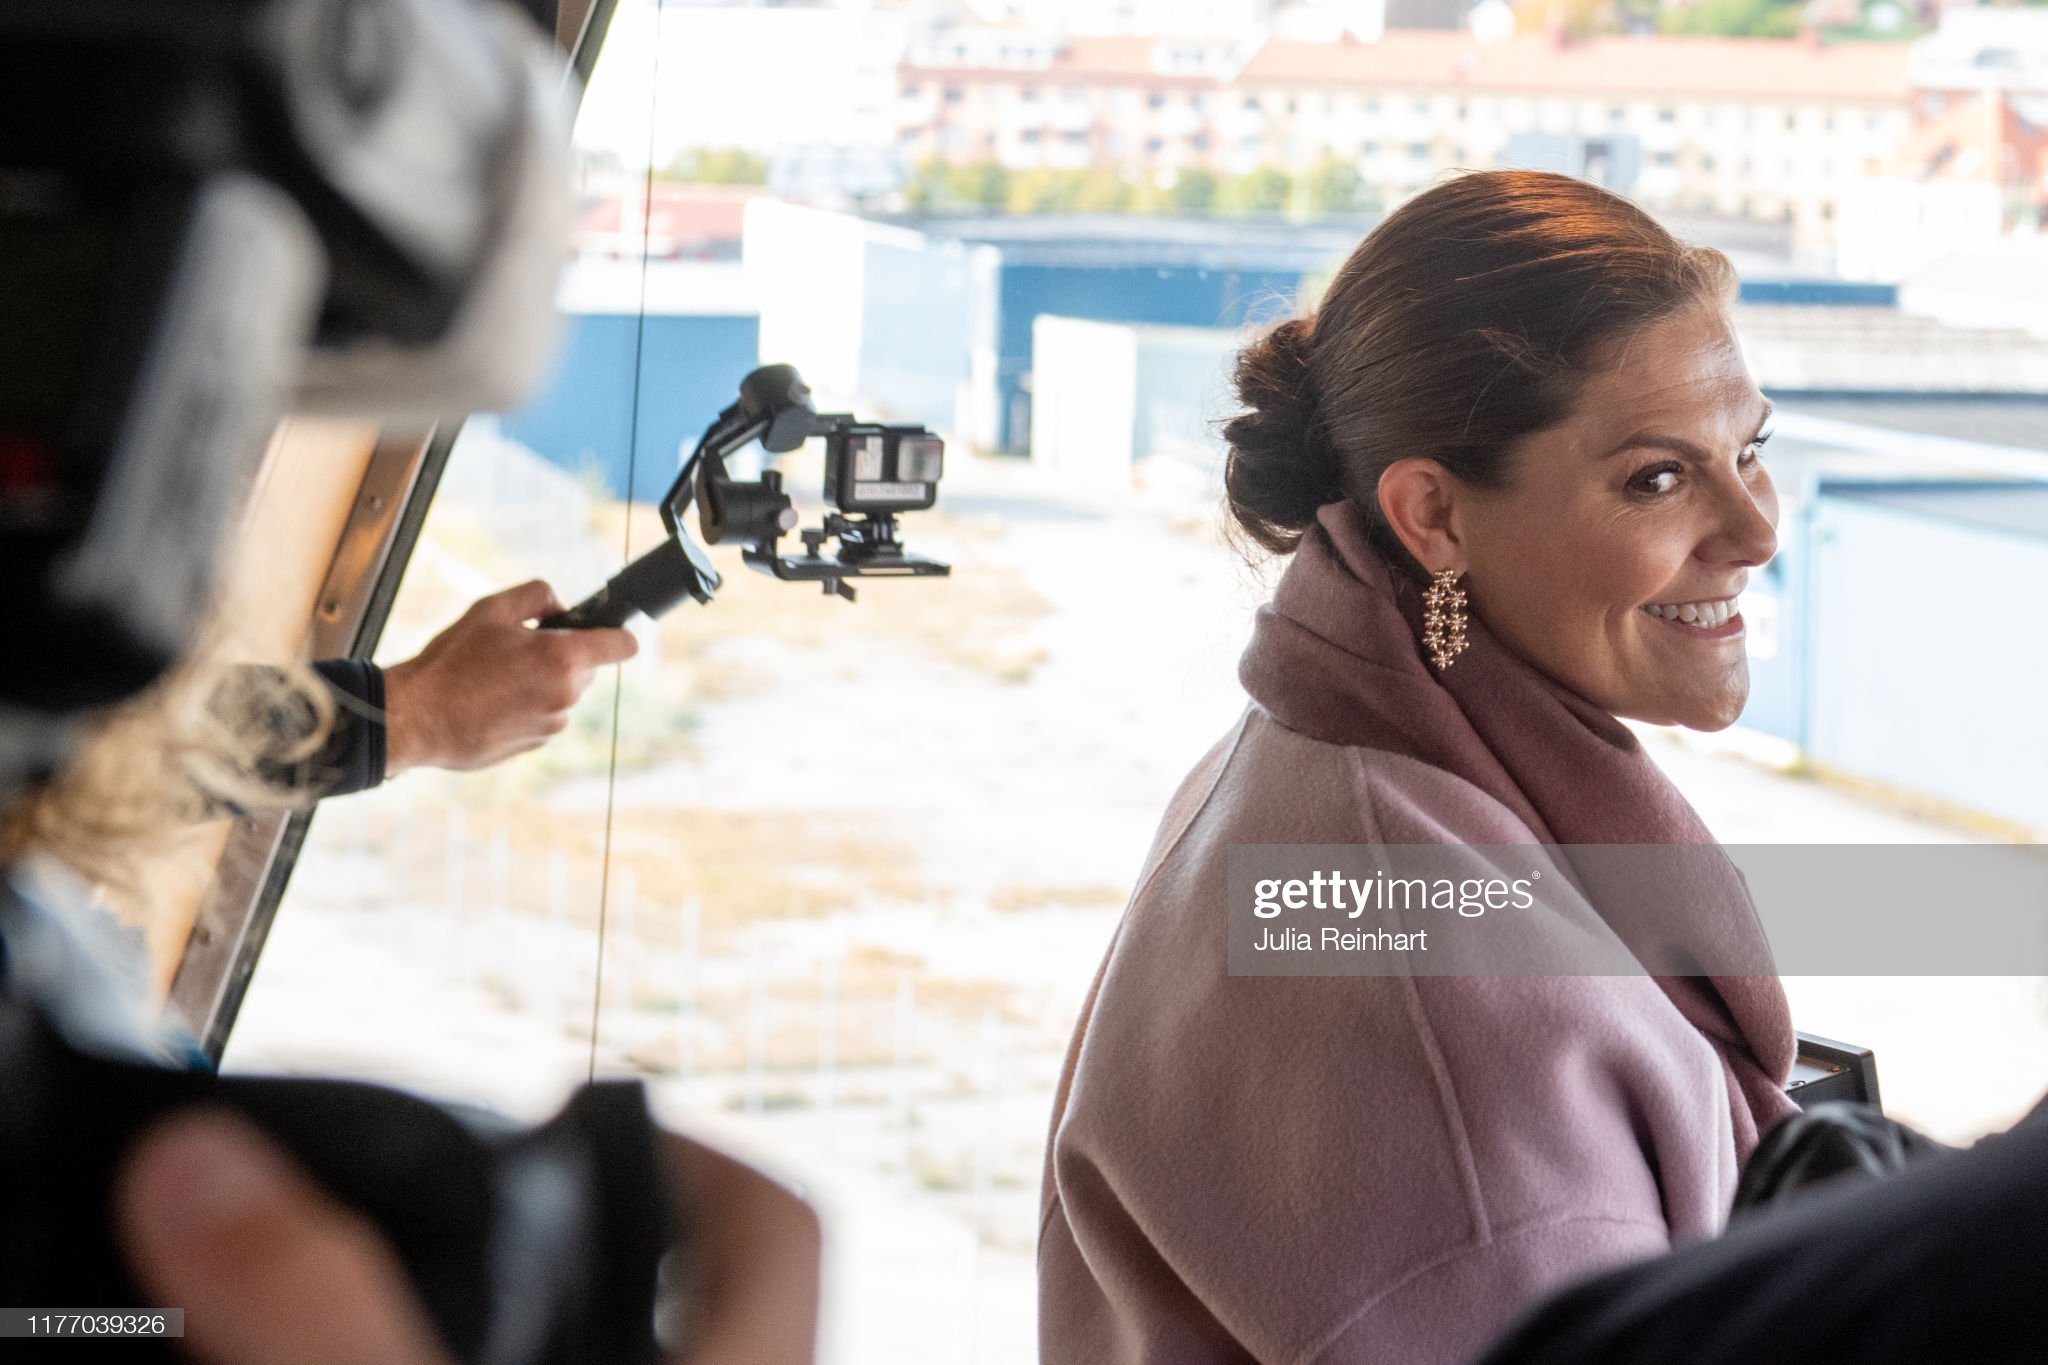 crown-princess-victoria-visits-the-sea-fish-laboratorys-newly-boat-picture-id1177039326